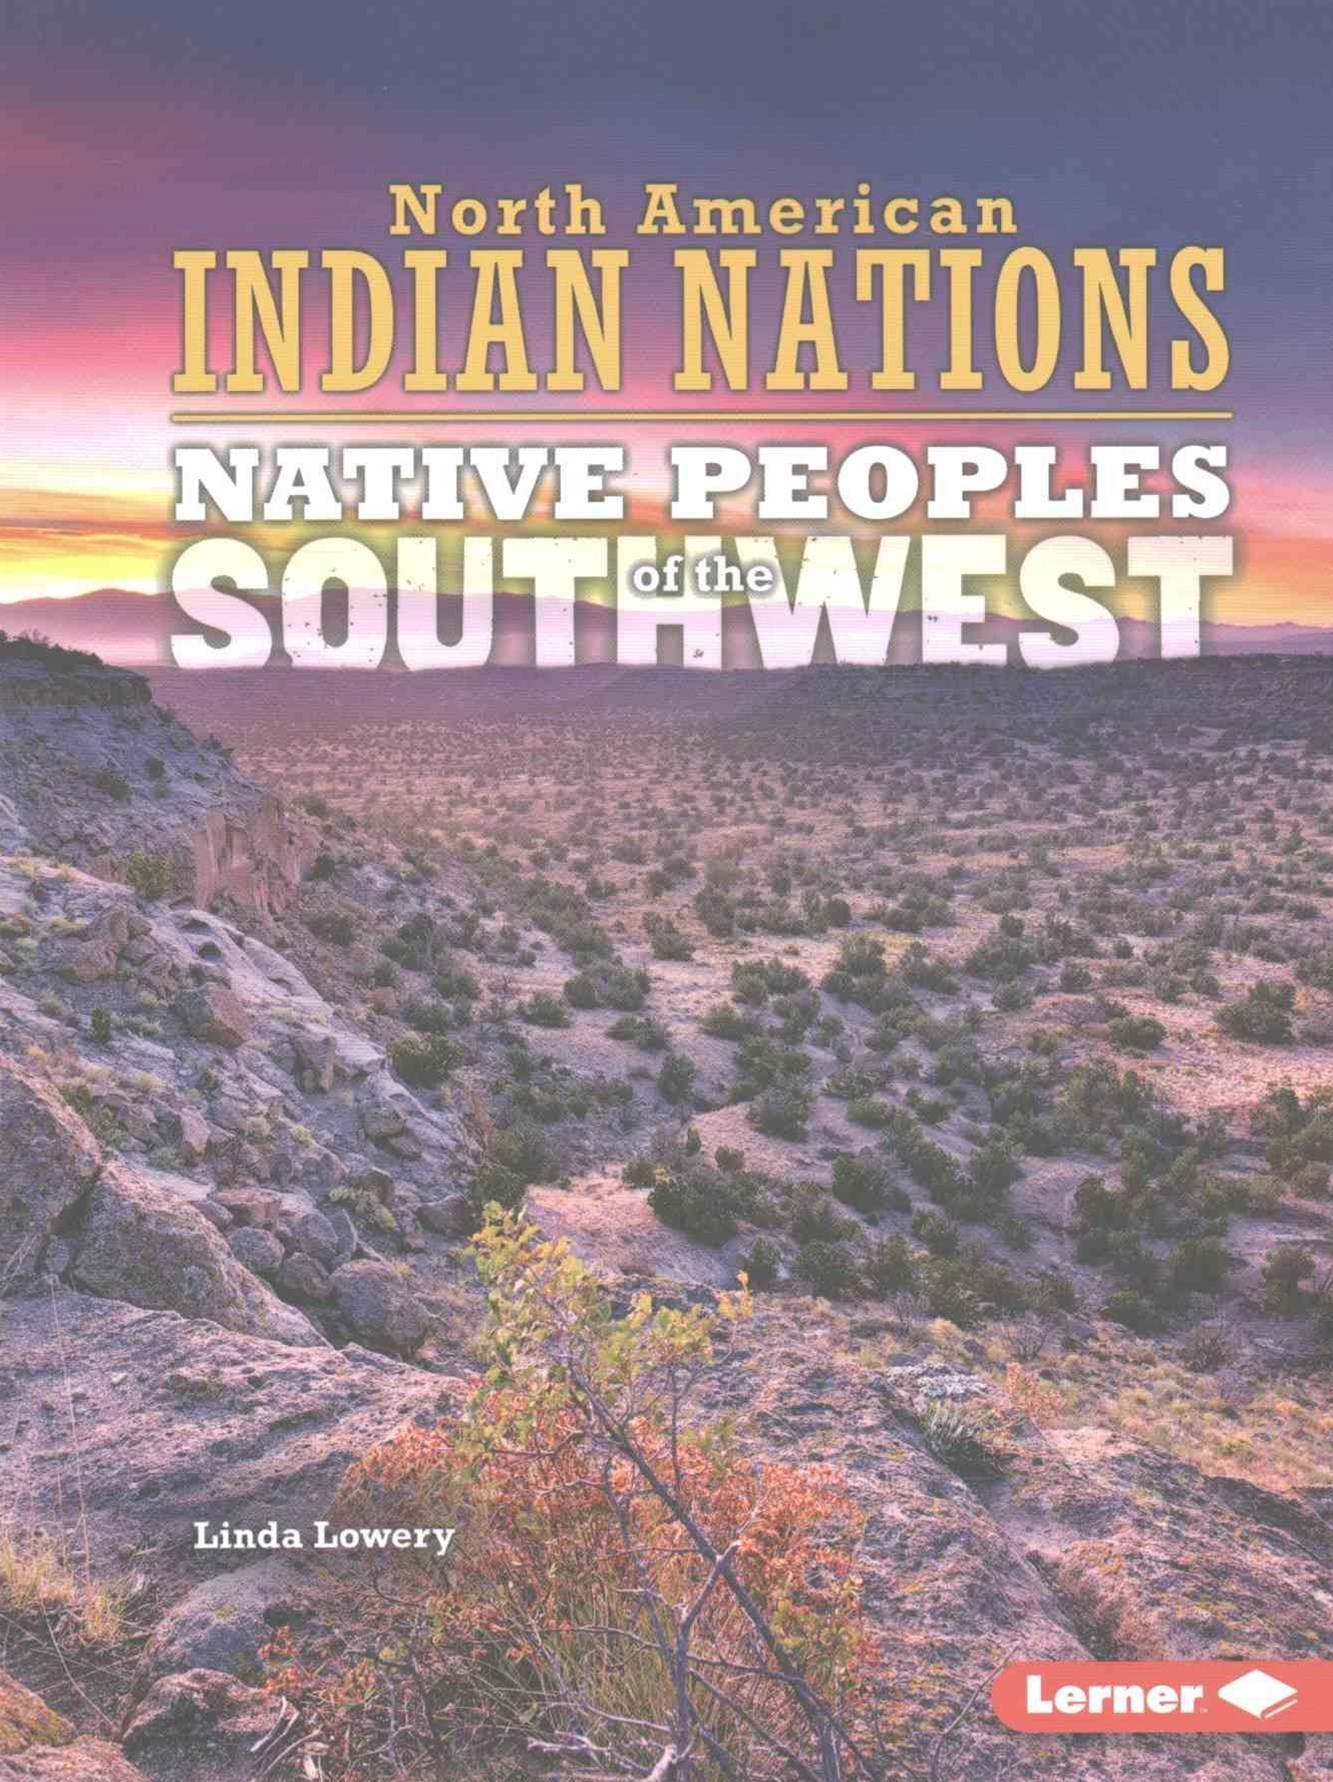 Southwest - Native Peoples - North American Indian Nations